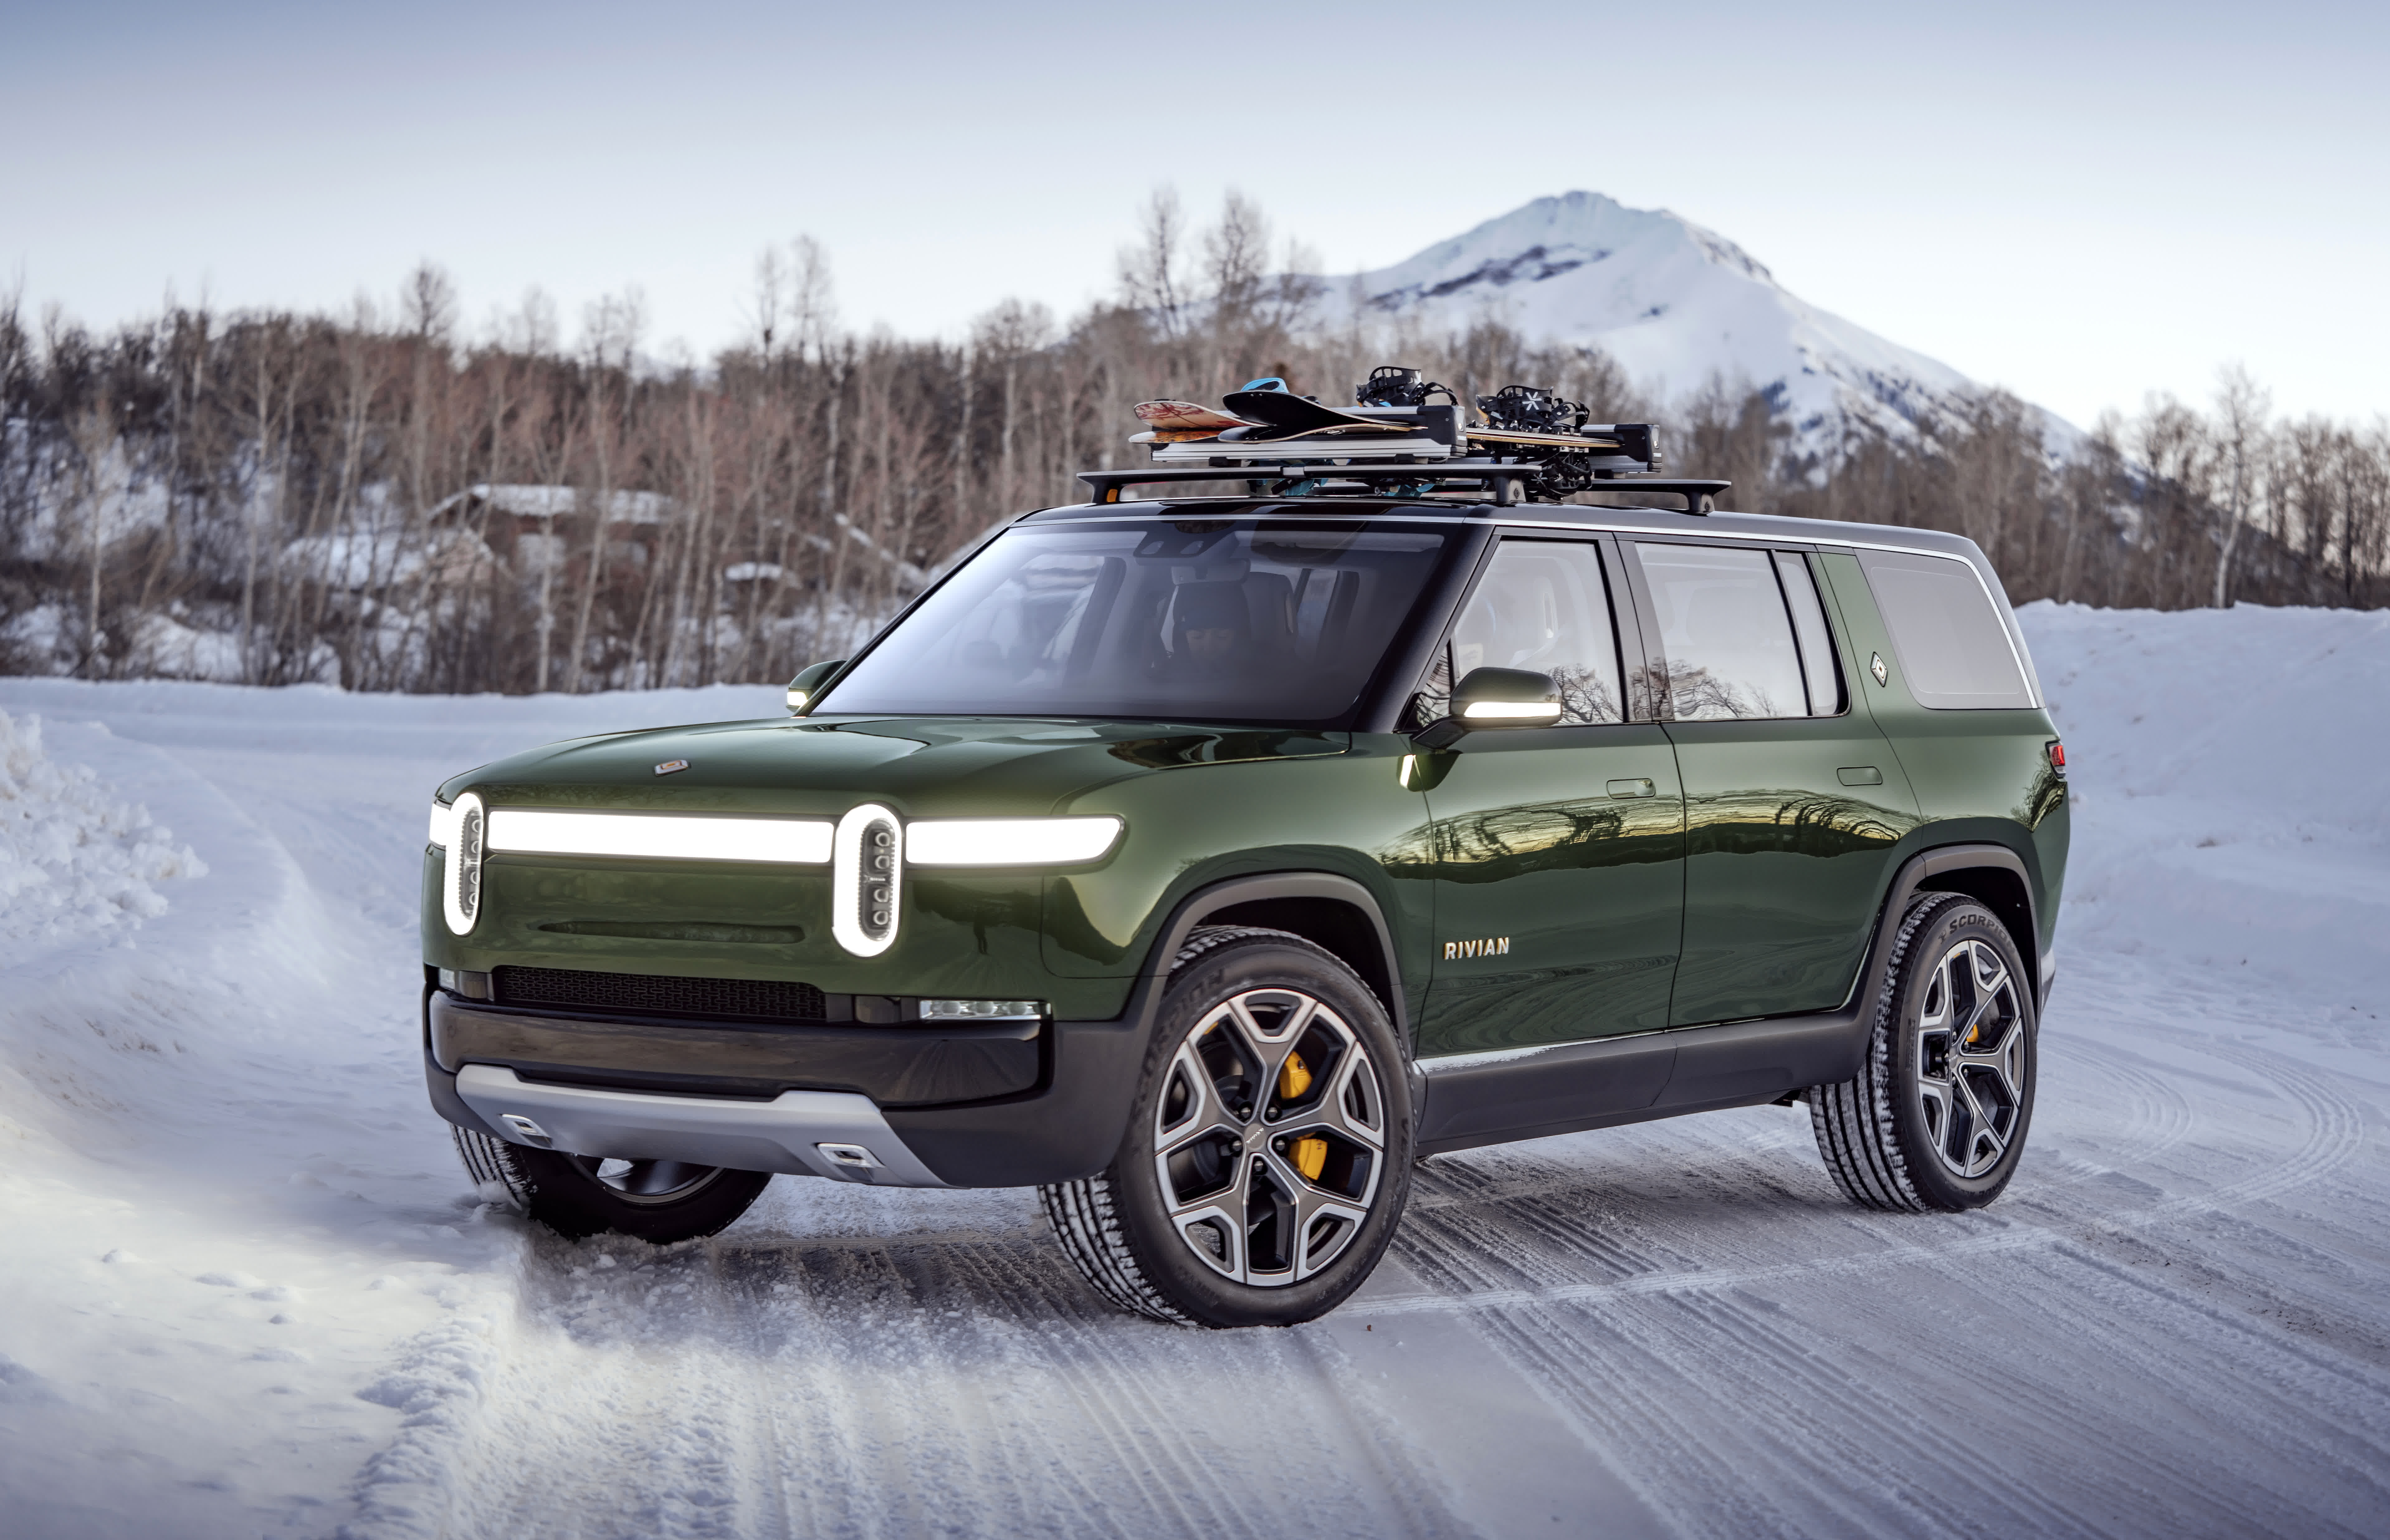 Ford S Rivian Based Lincoln Suv Will Face Cautious Consumer Adoption Of Electric Vehicles Nyse F Seeking Alpha